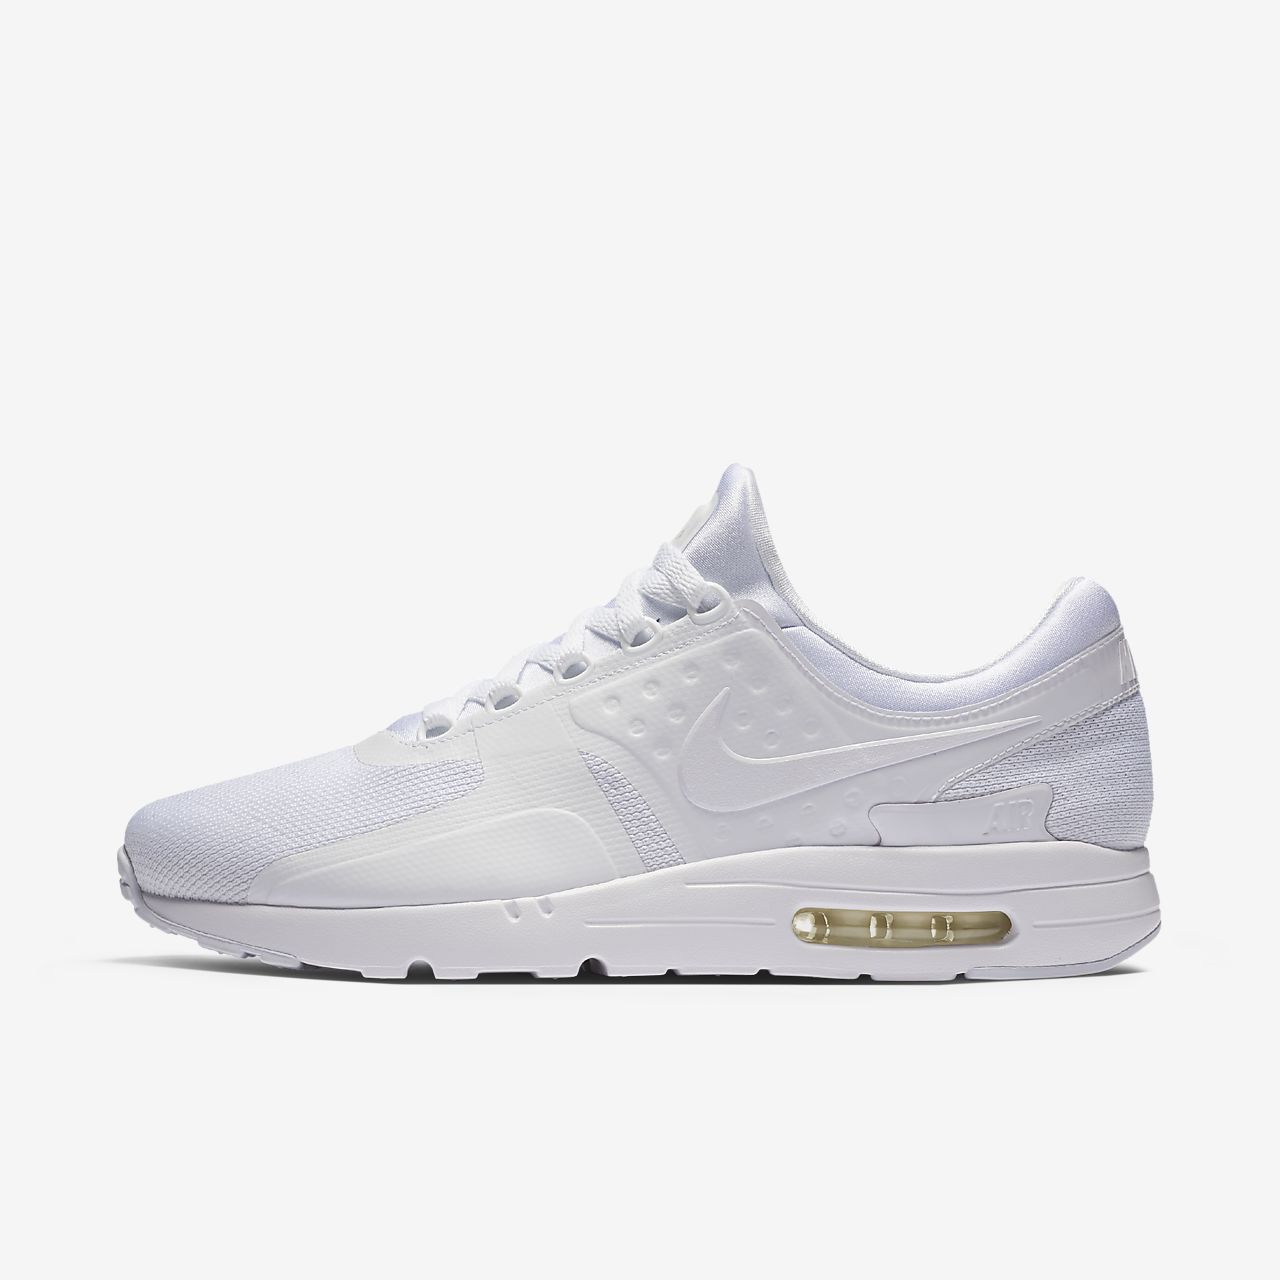 Nike Air Max Zero 876070 100 Essential UK 11.5